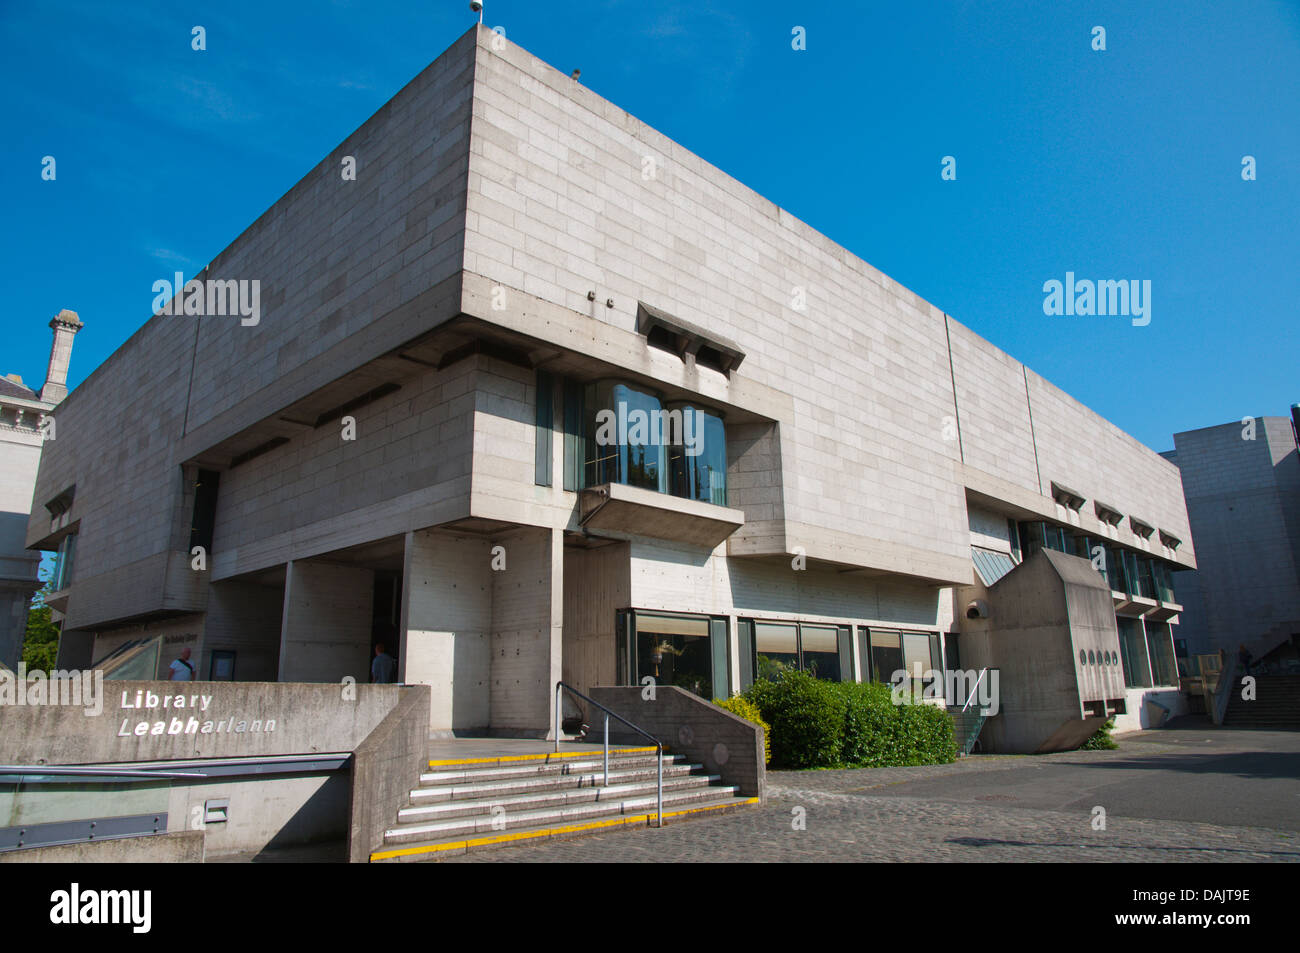 Brutalist style Berkeley Library building Trinity college university area central Dublin Ireland Europe - Stock Image